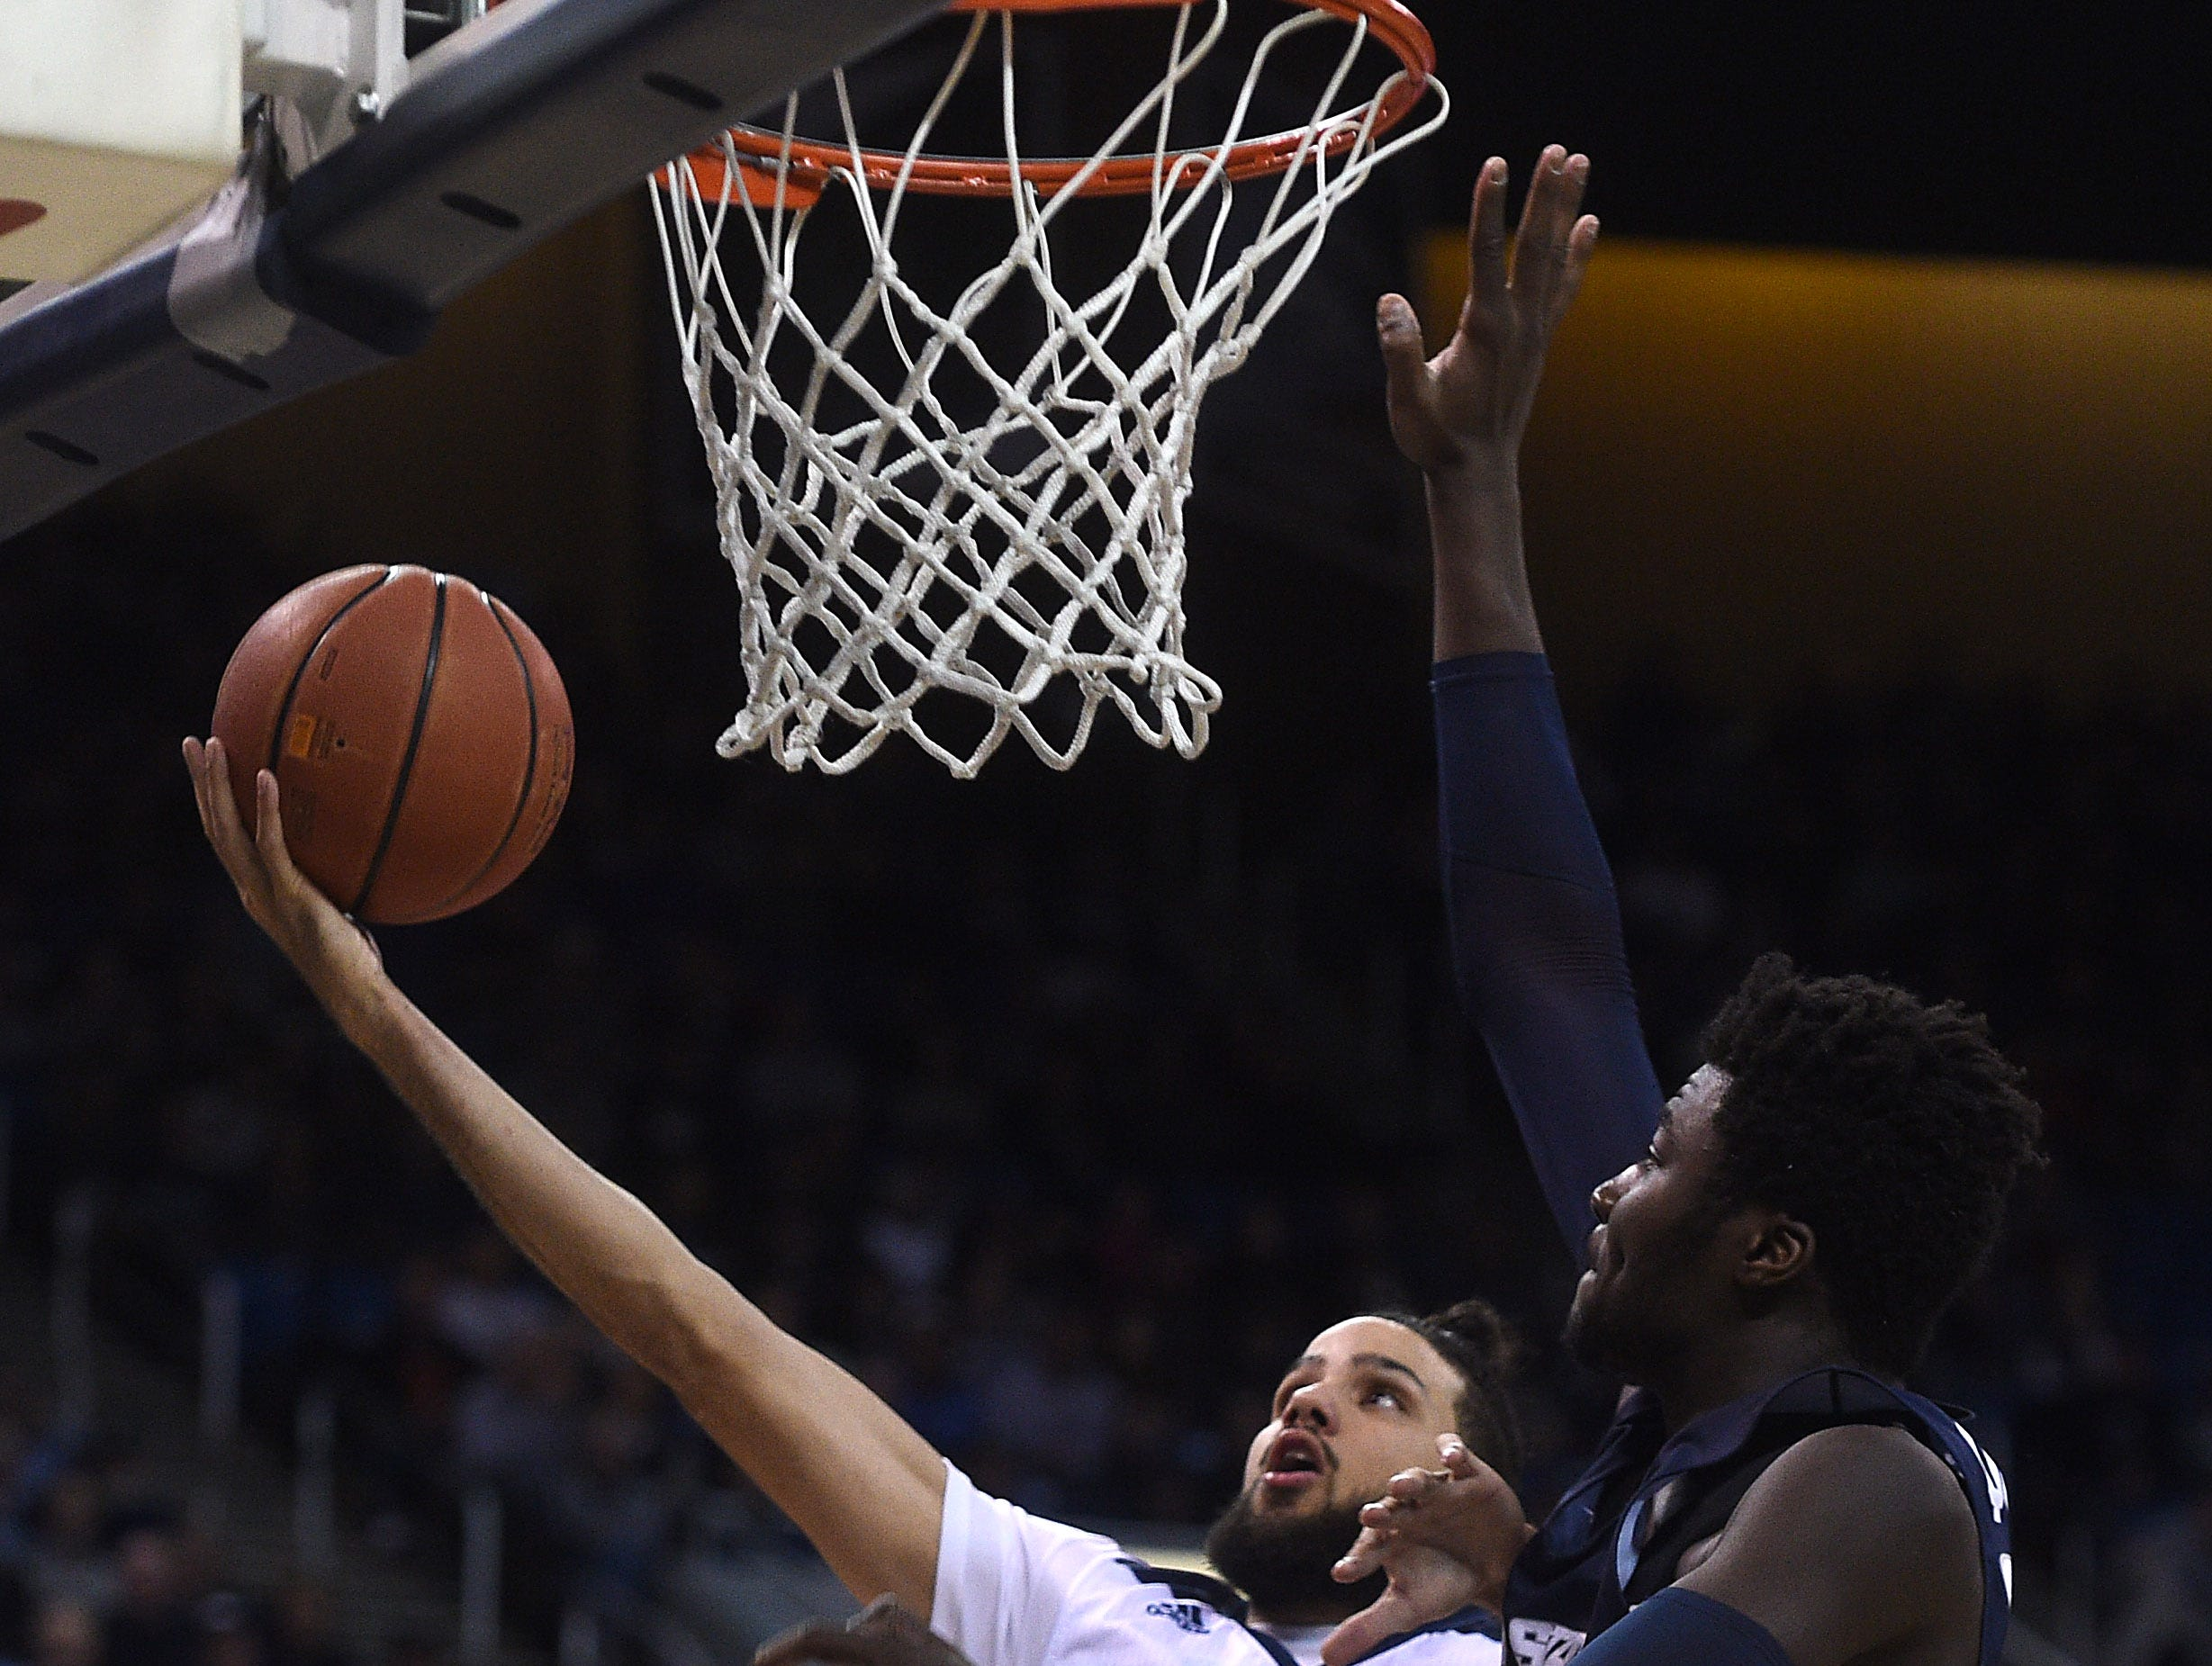 Nevada's Caleb Martin drives to the basket against Utah St. during their basketball game at Lawlor Events Center in Reno on Jan. 2, 2019.